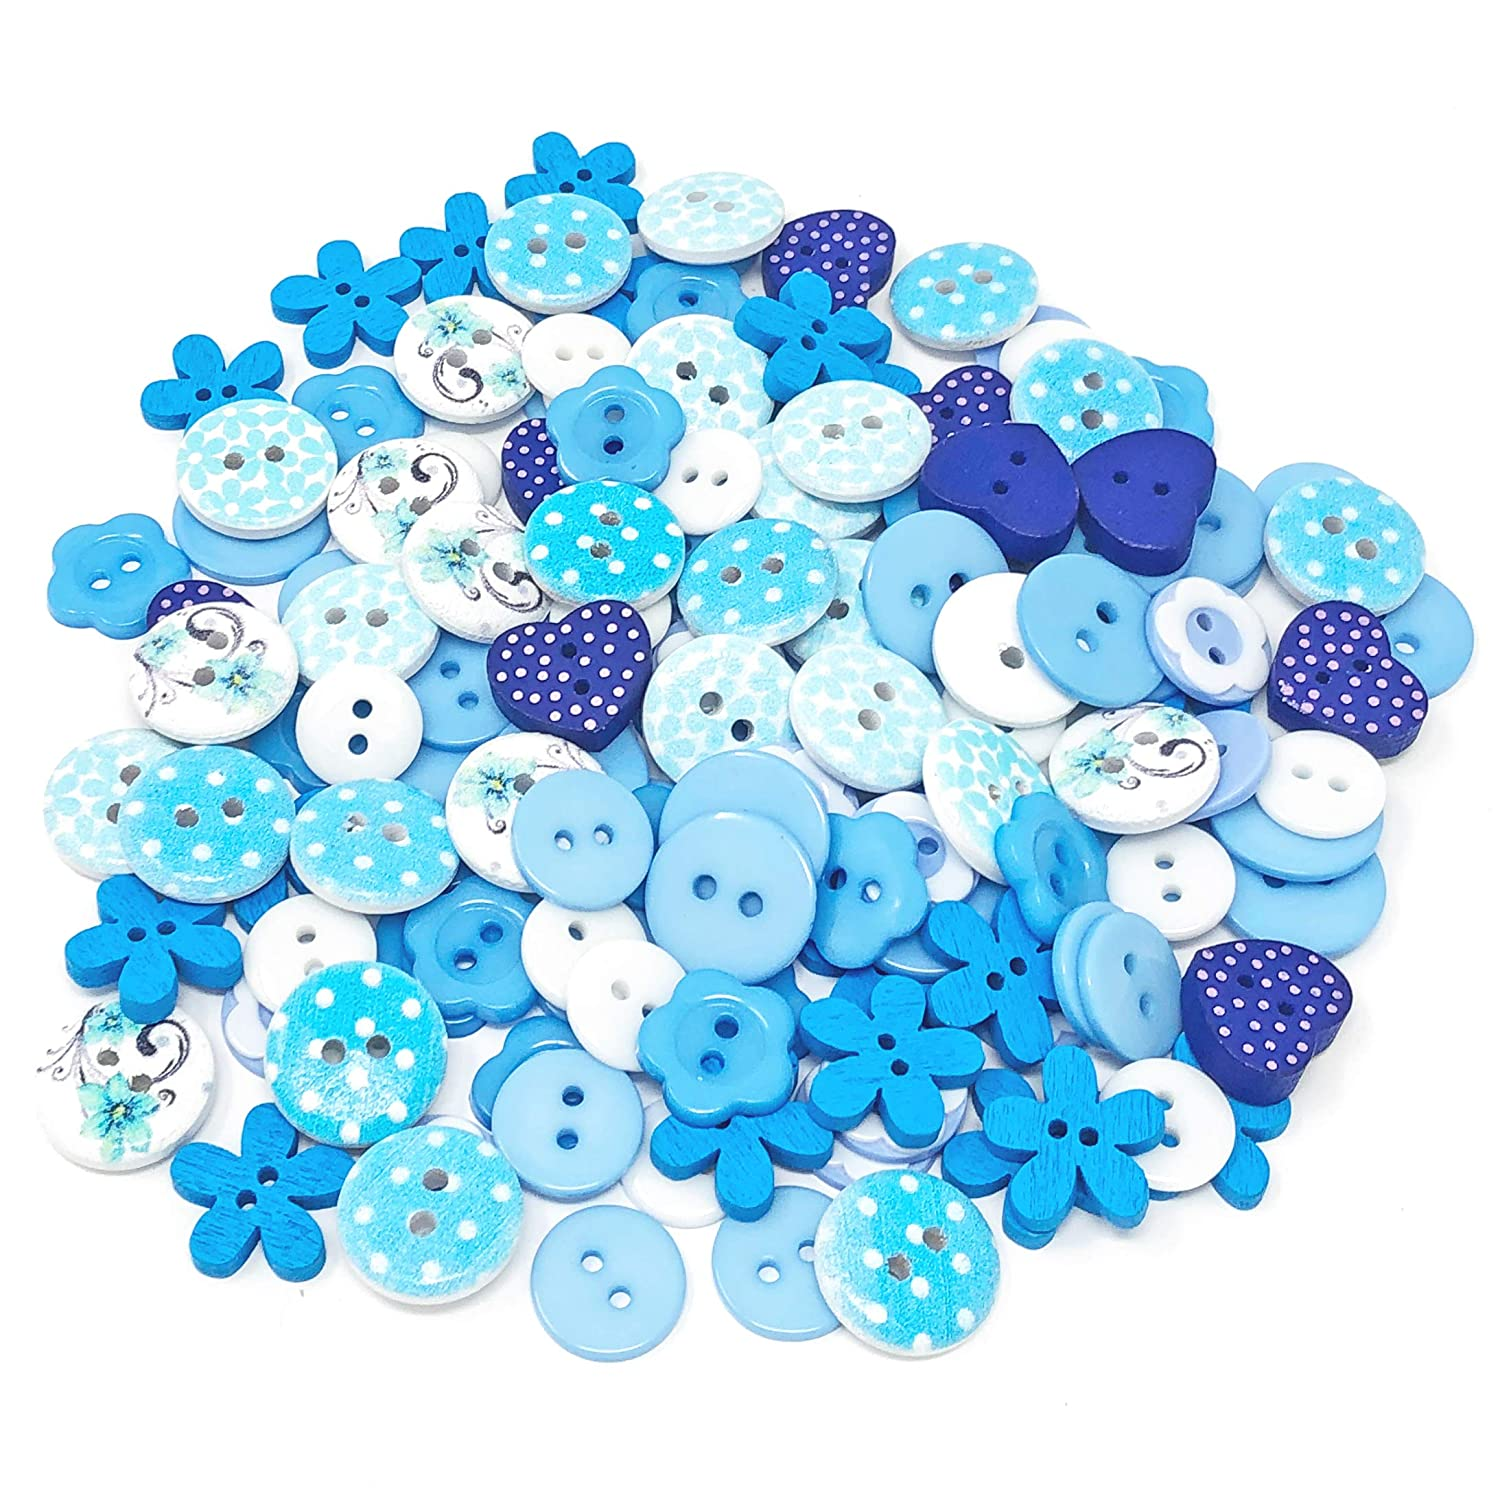 150pcs Blue Mix Wood Acrylic & Resin Buttons For Cardmaking Embellishments Wedding Touches